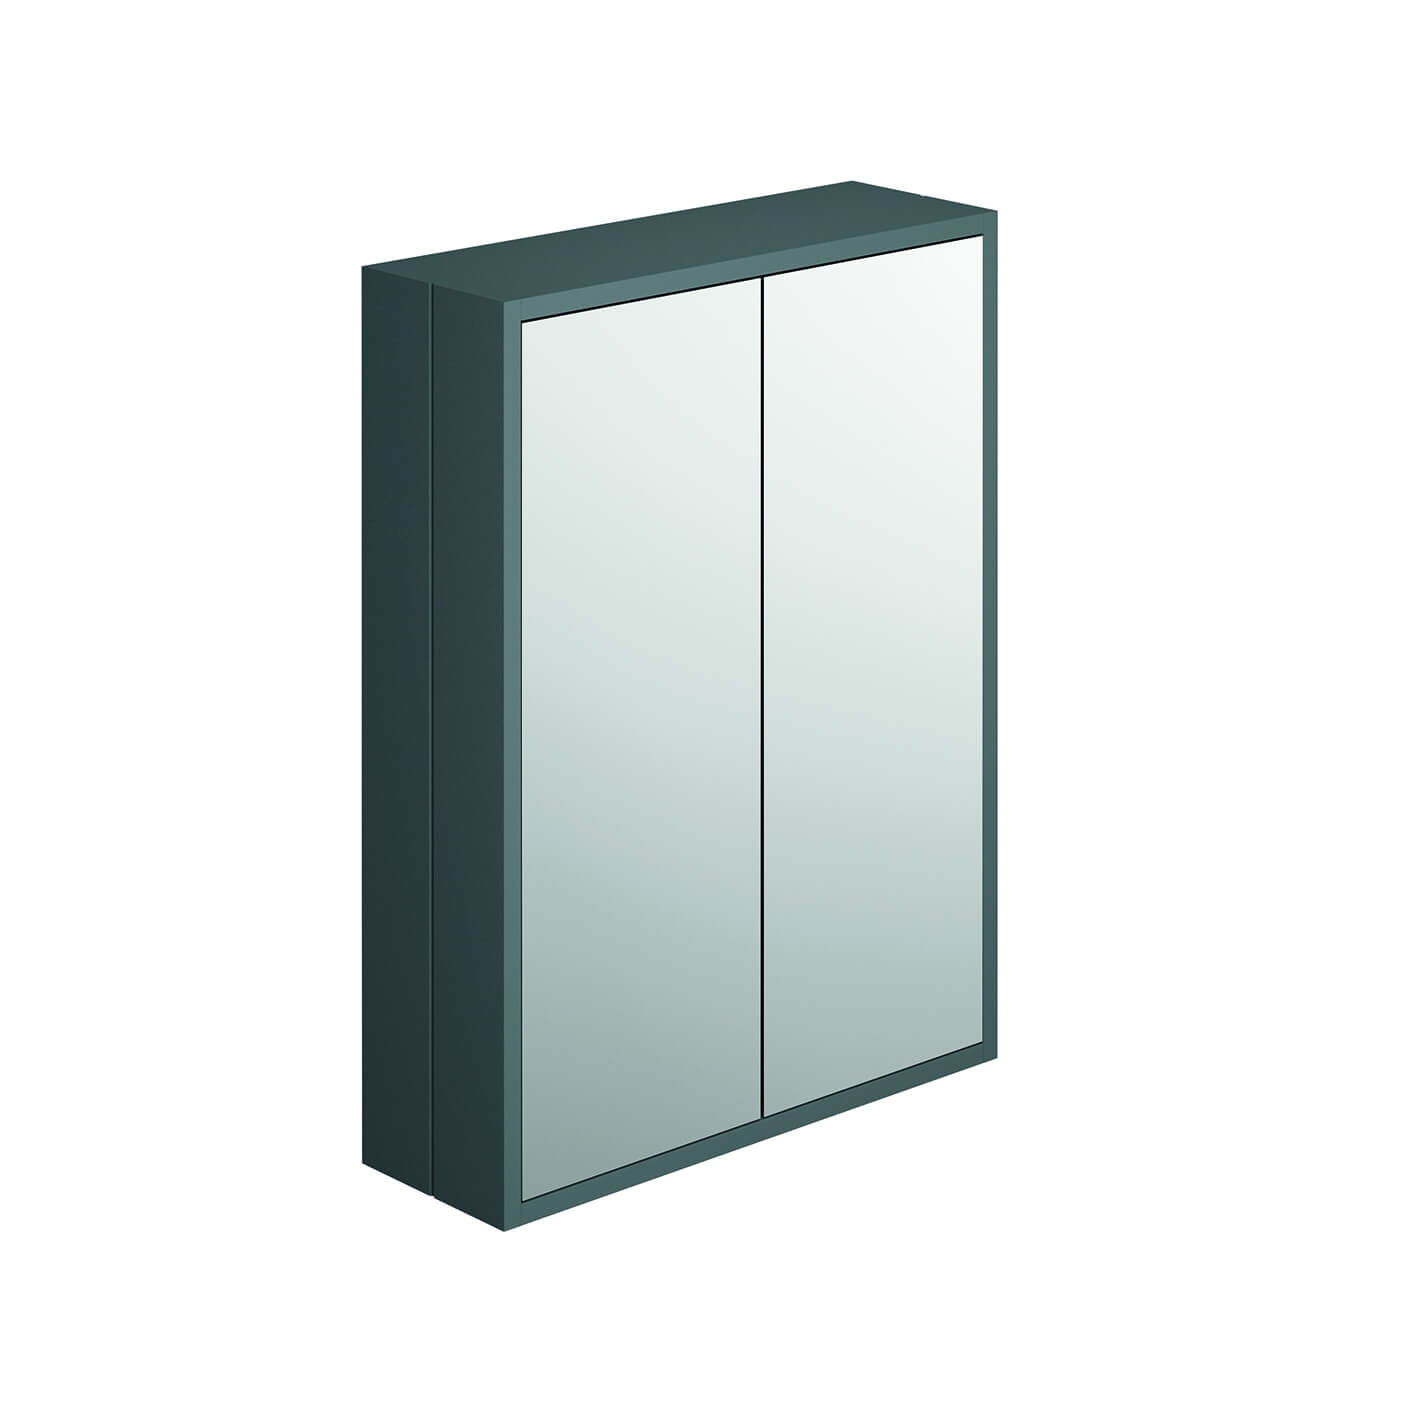 Synergy Mirrors & Cabinets